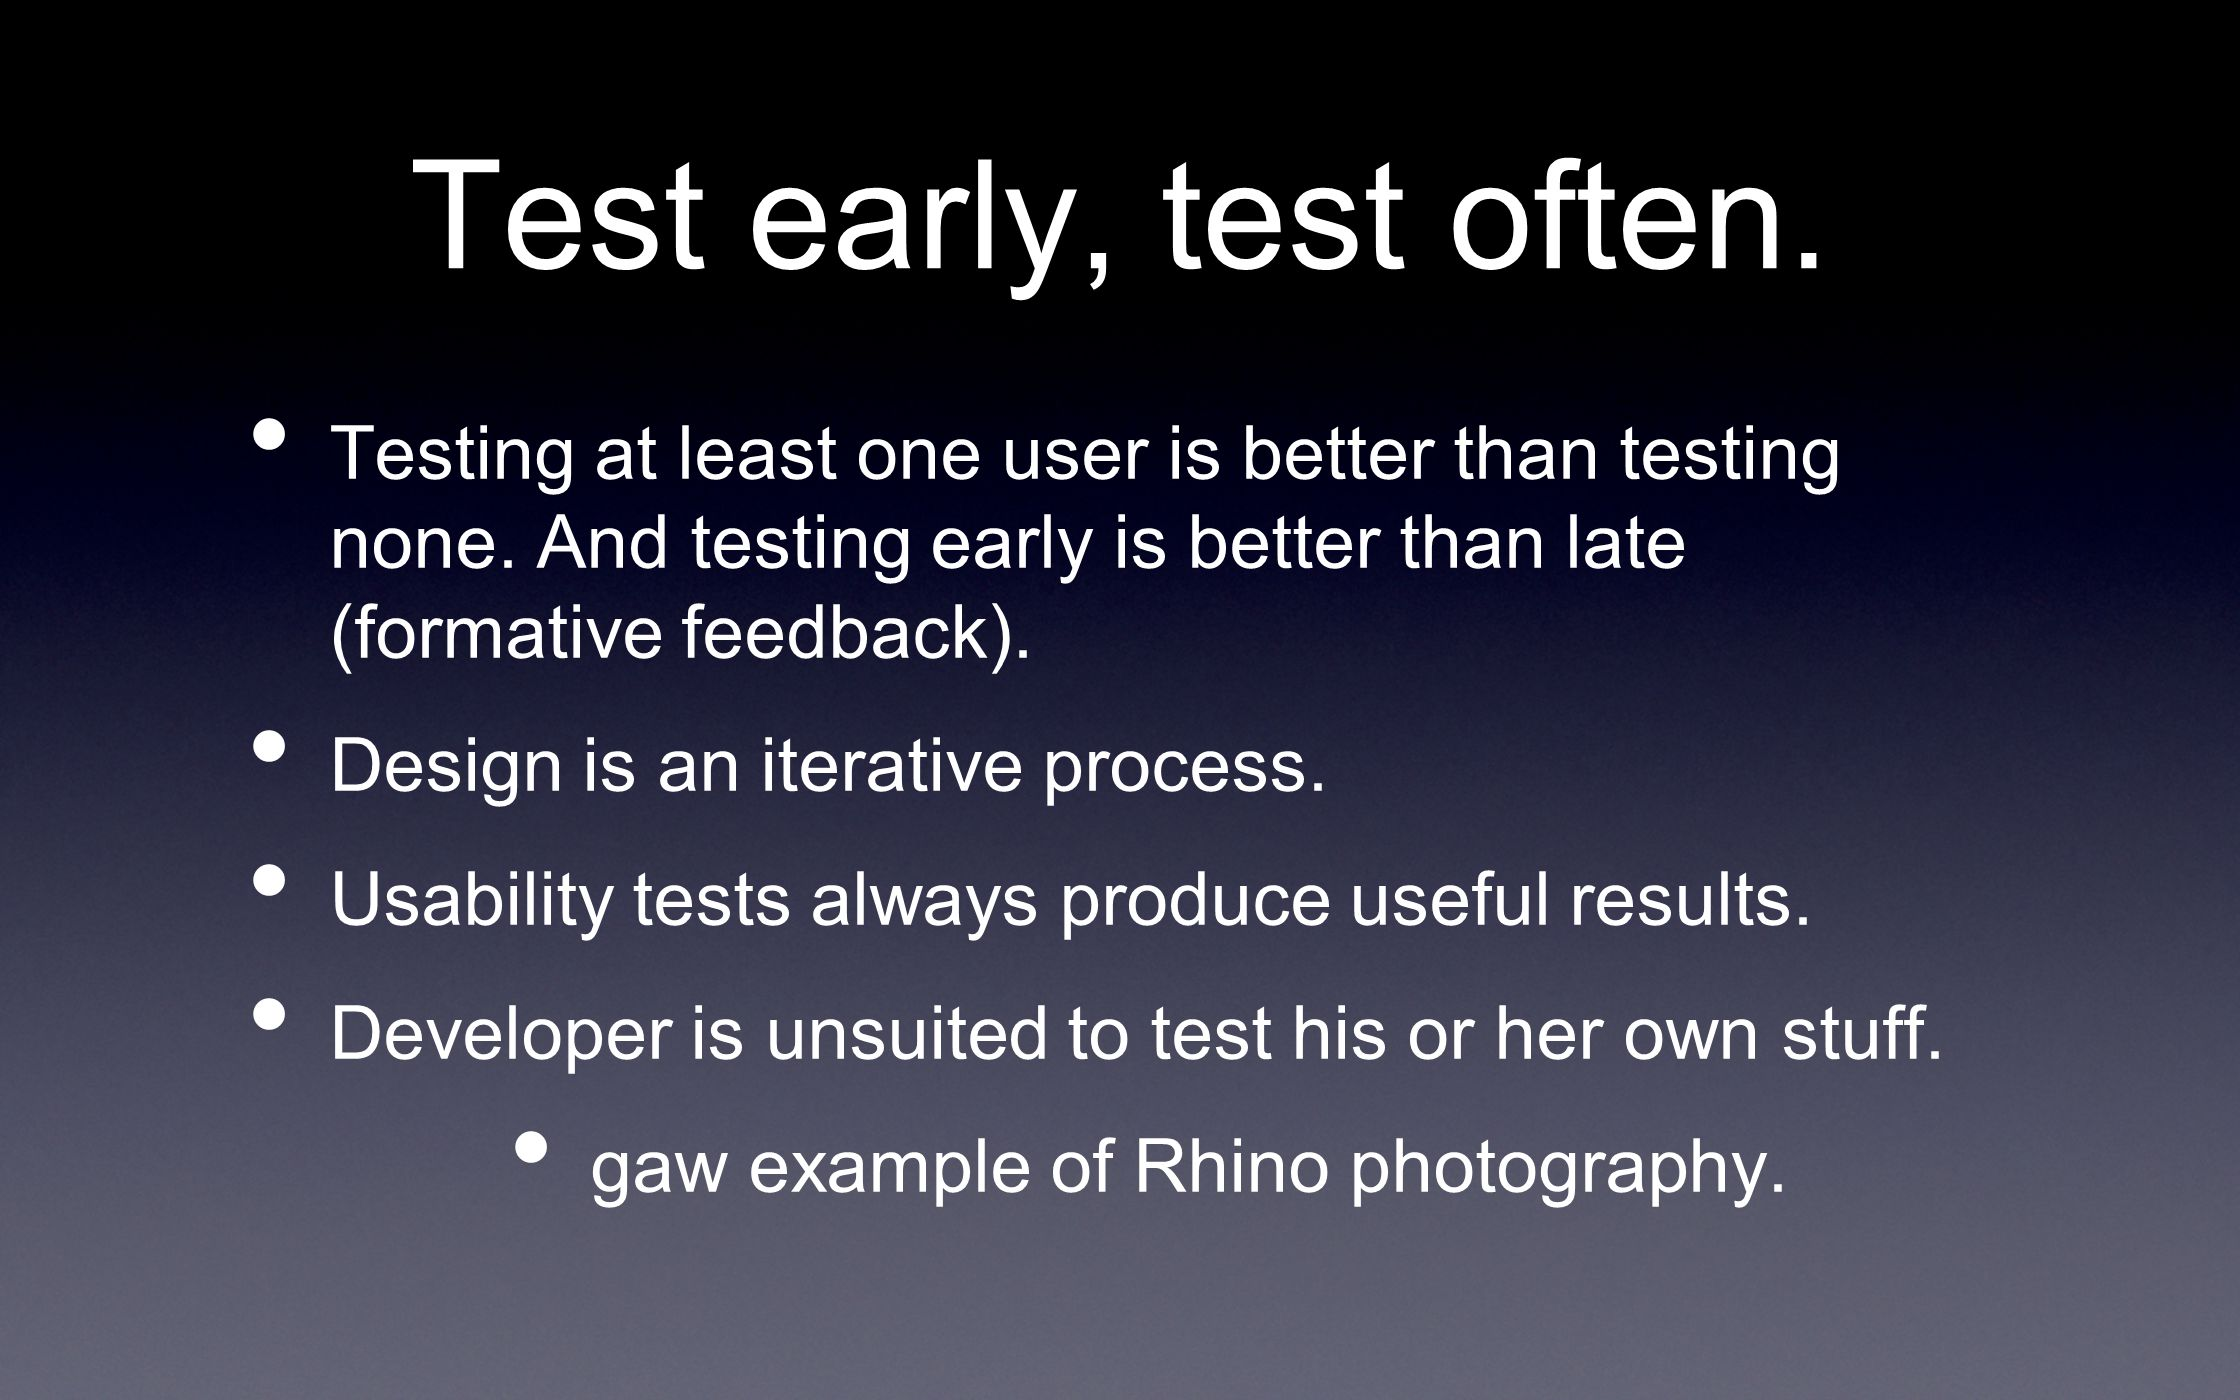 Test early, test often. Testing at least one user is better than testing none. And testing early is better than late (formative feedback). Design is a